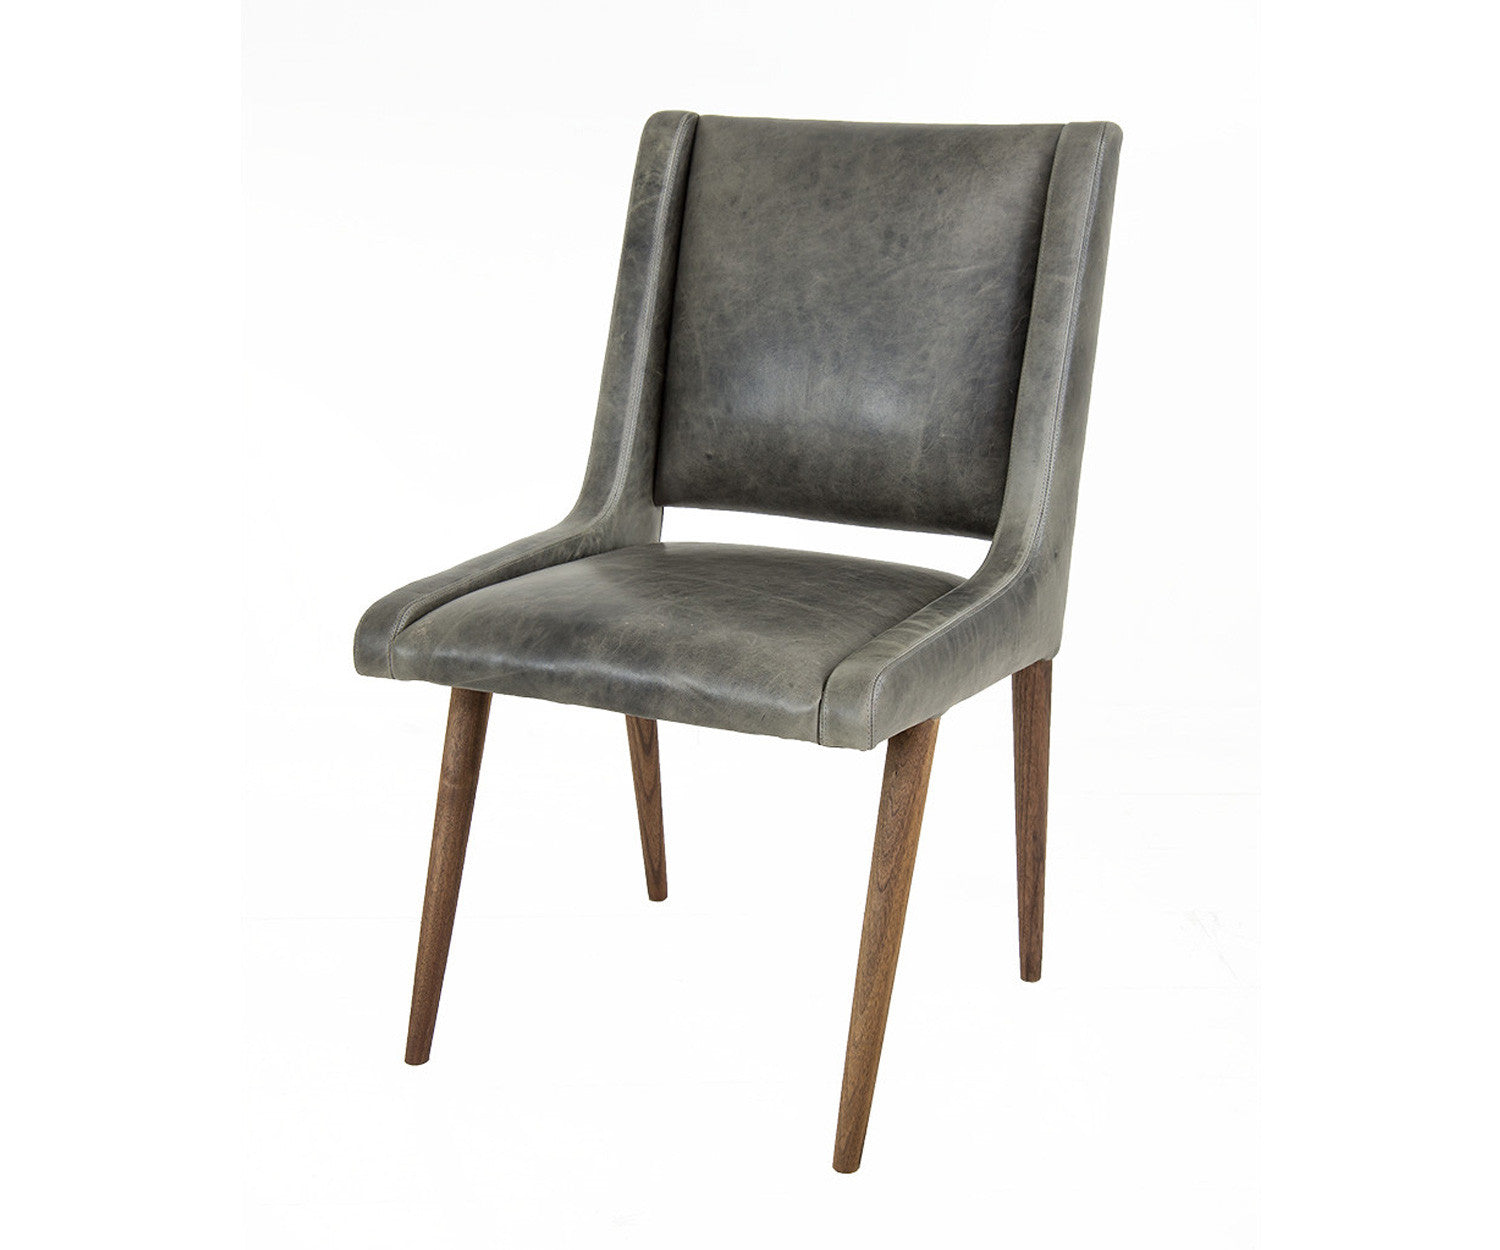 Mid Century Dining Chair In Distressed Grey Leather Modshop